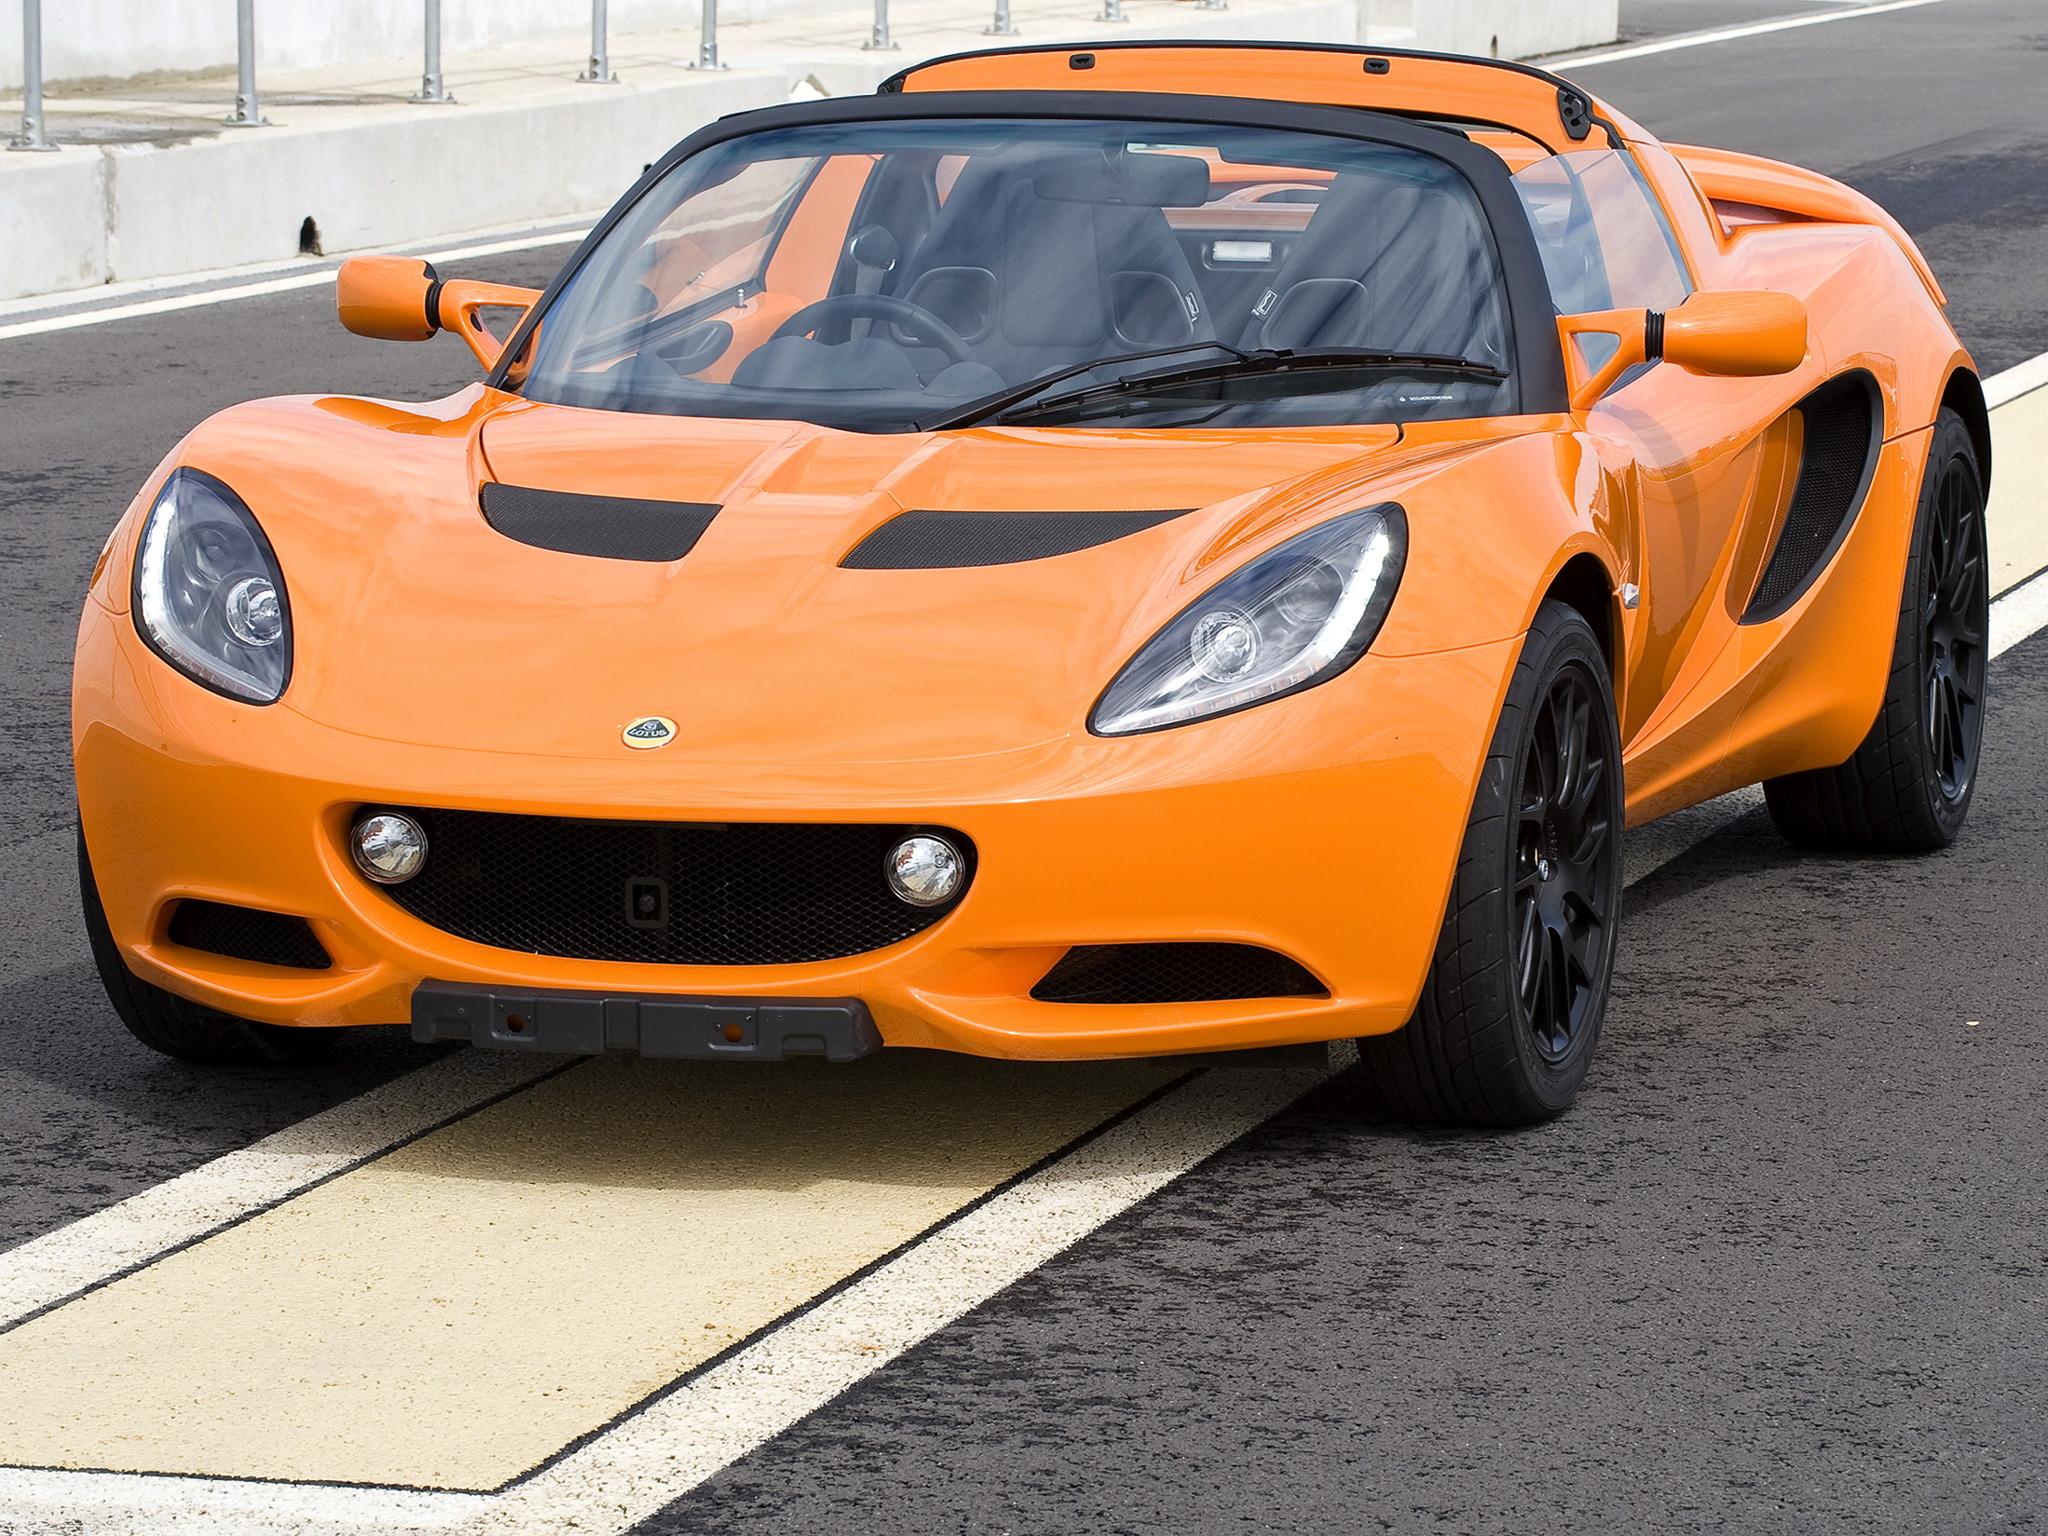 Lotus Elise S photos - PhotoGallery with 18 pics| CarsBase.com